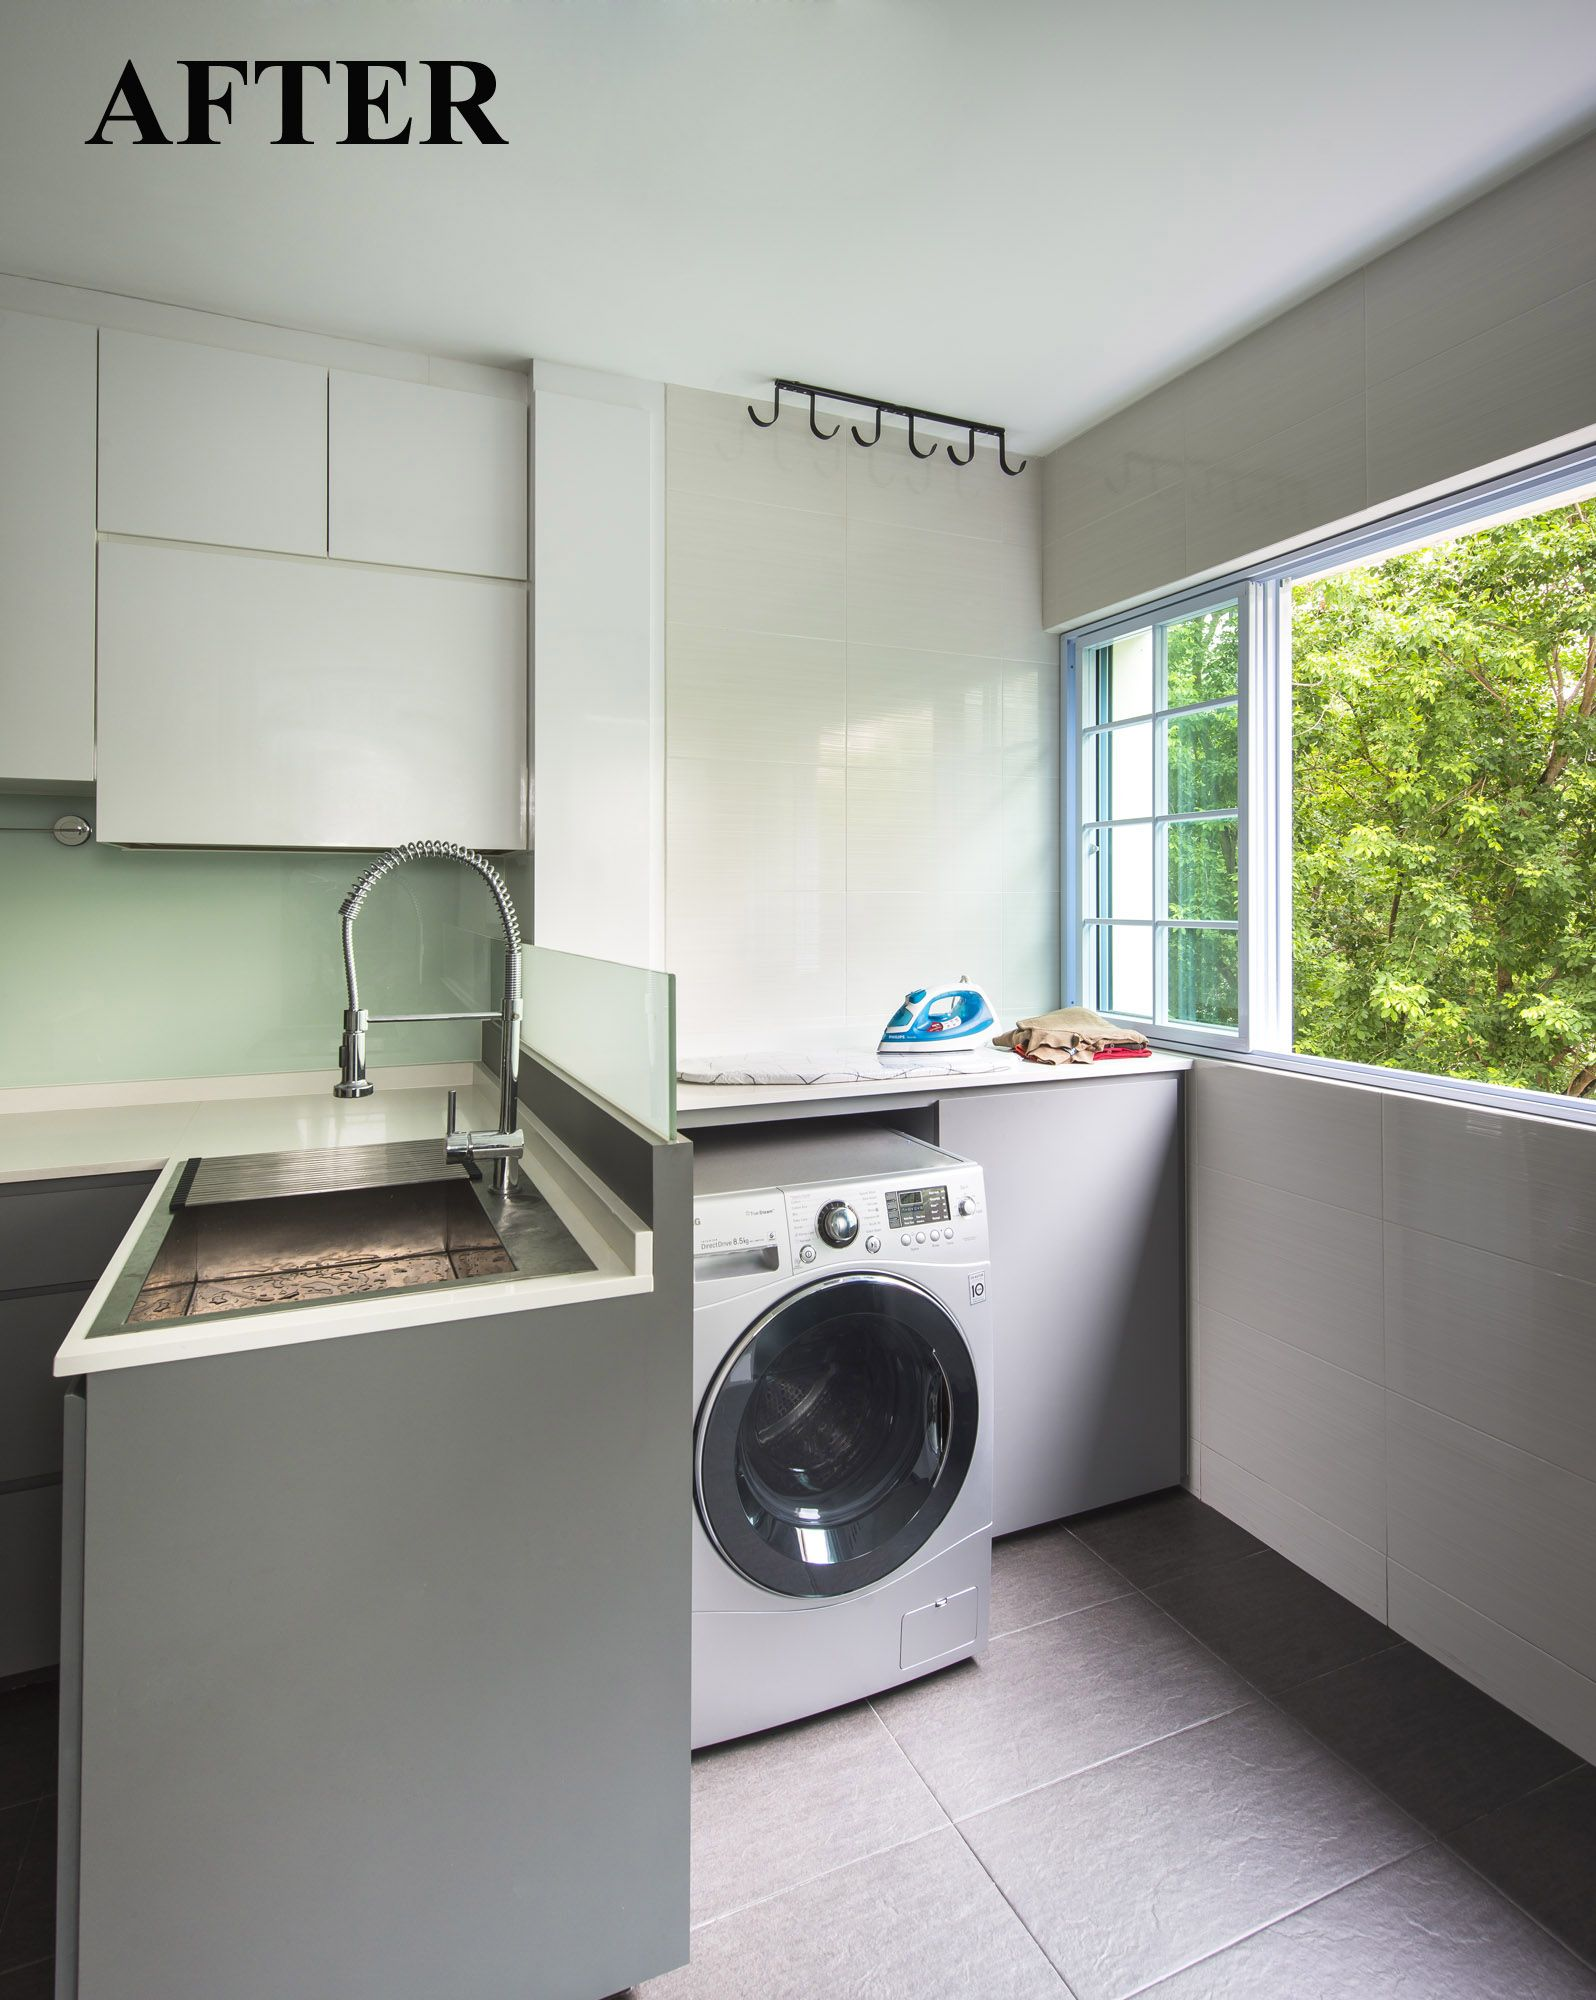 3 Room Hdb Interior Design Ideas: Laundry Design, Laundry Room